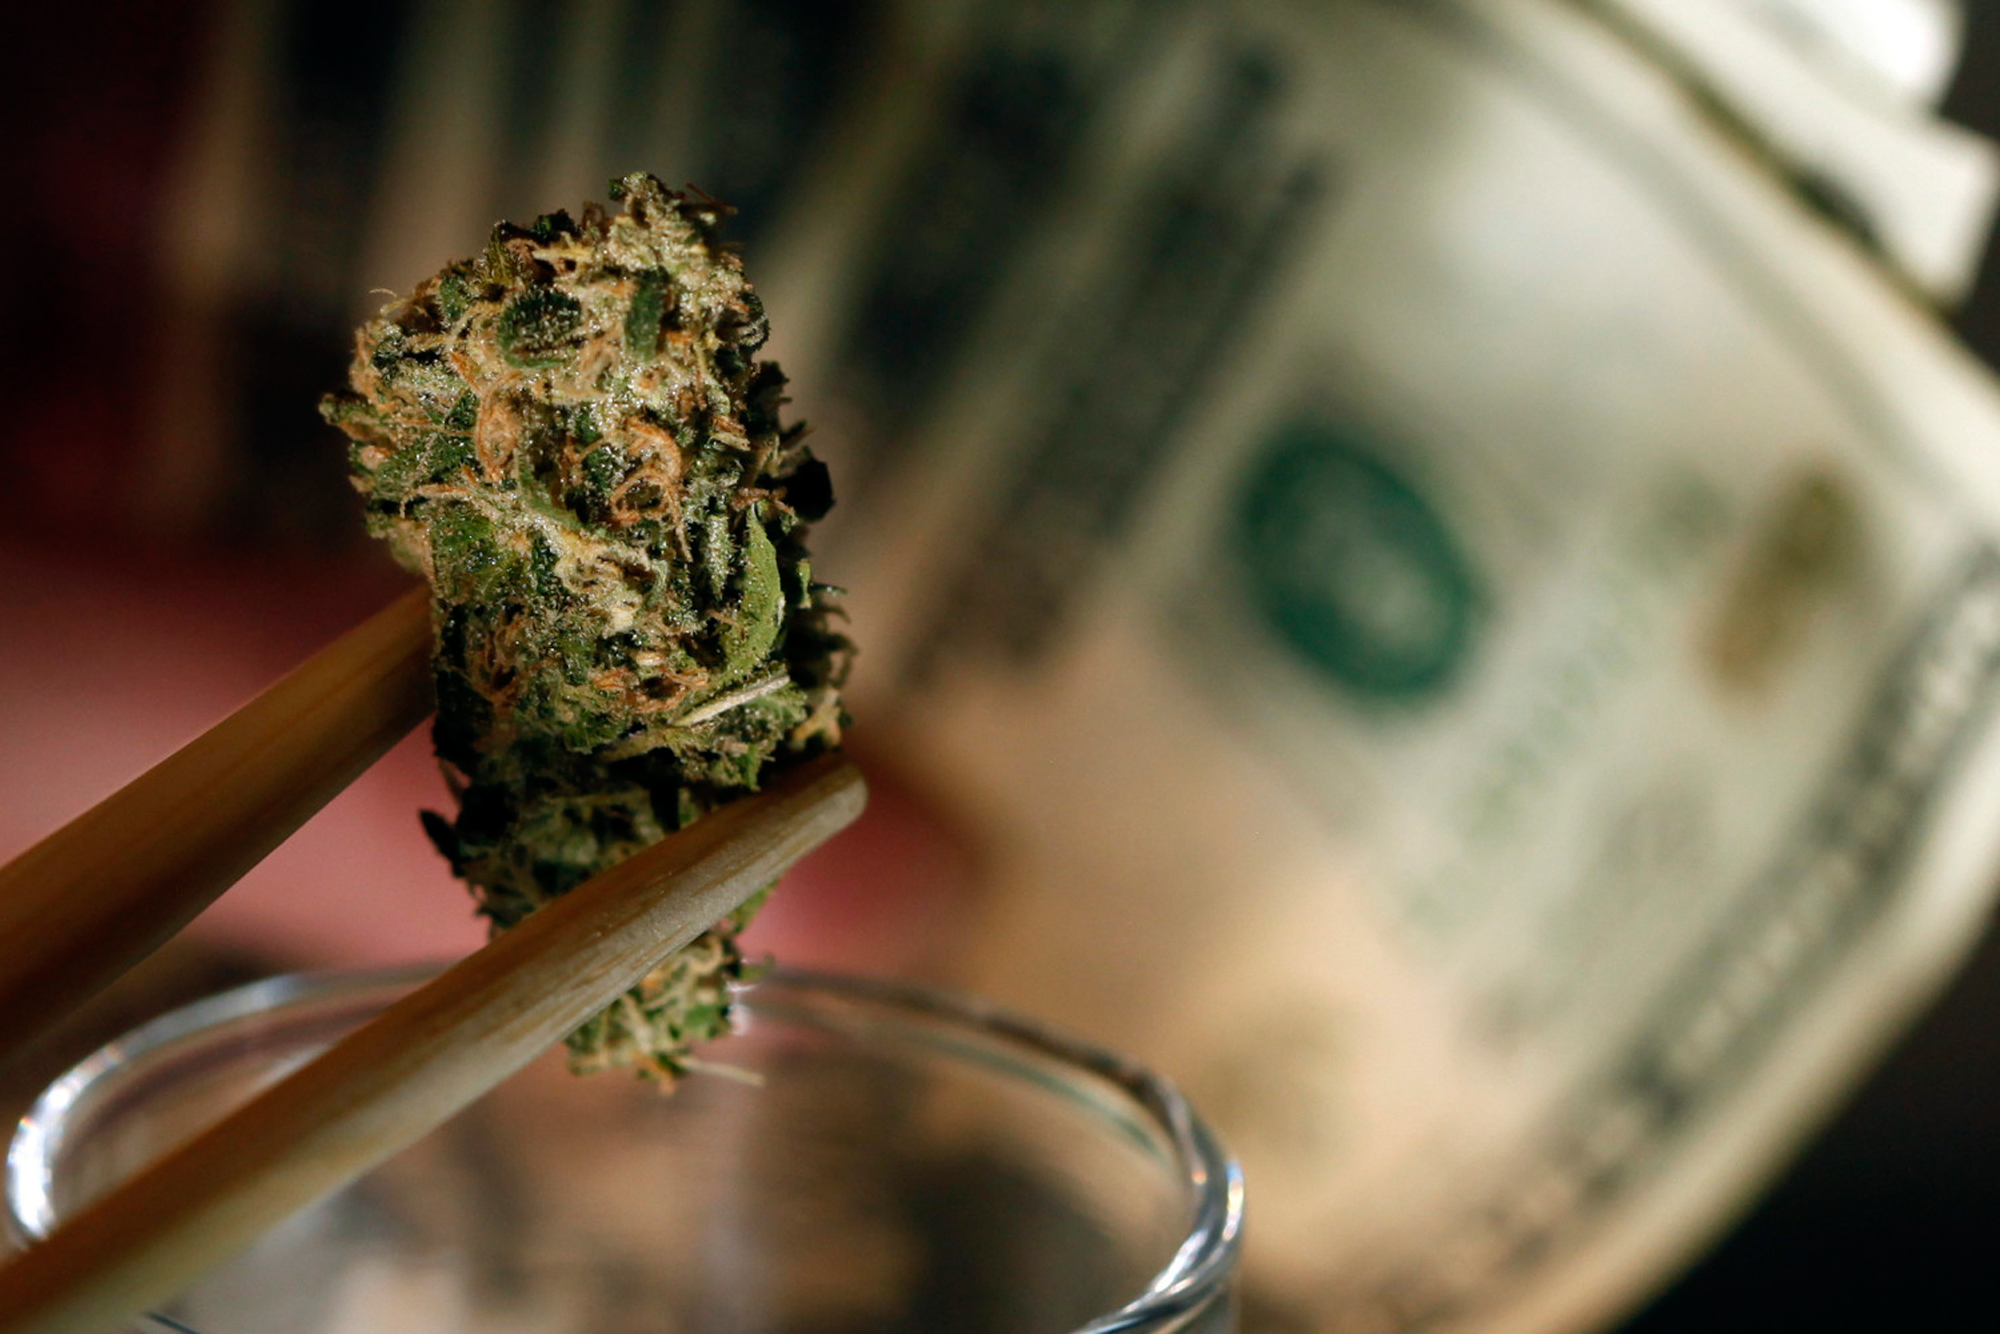 Is business going to pot?